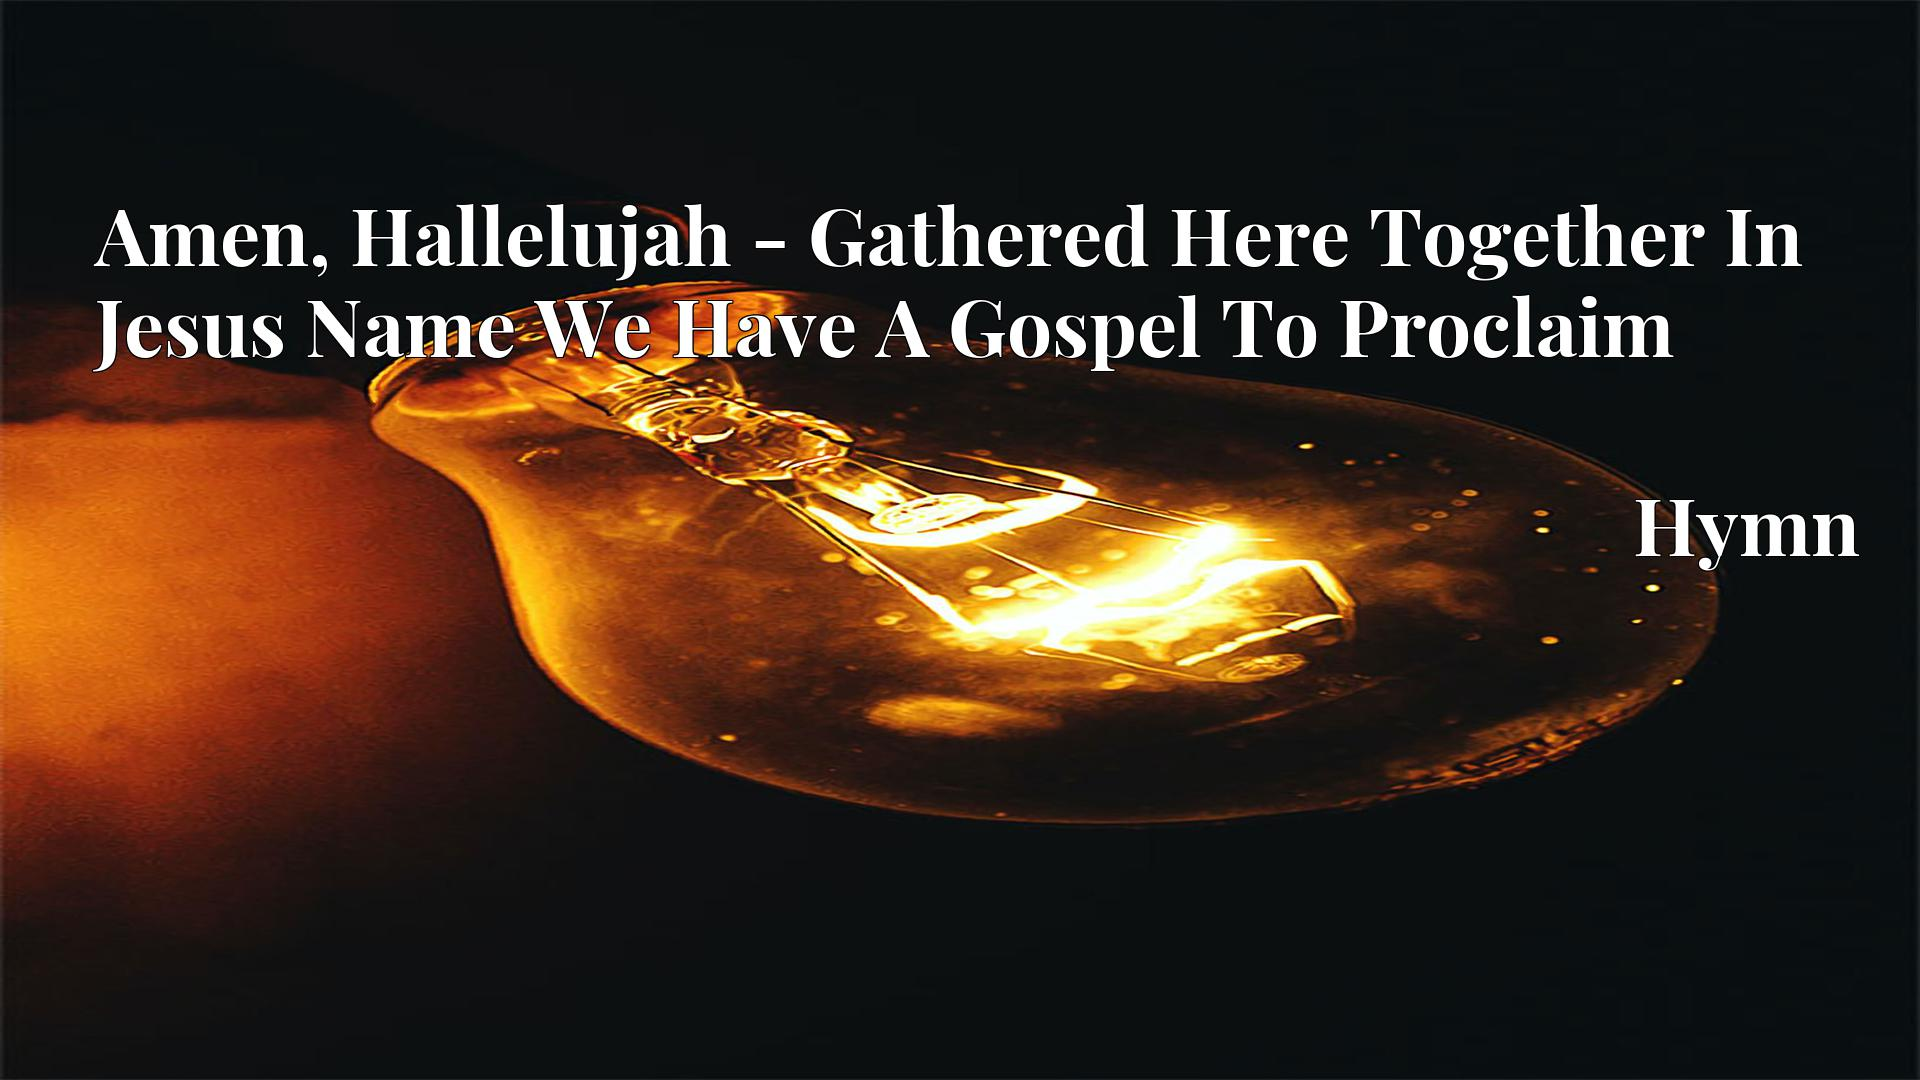 Amen, Hallelujah - Gathered Here Together In Jesus Name We Have A Gospel To Proclaim - Hymn